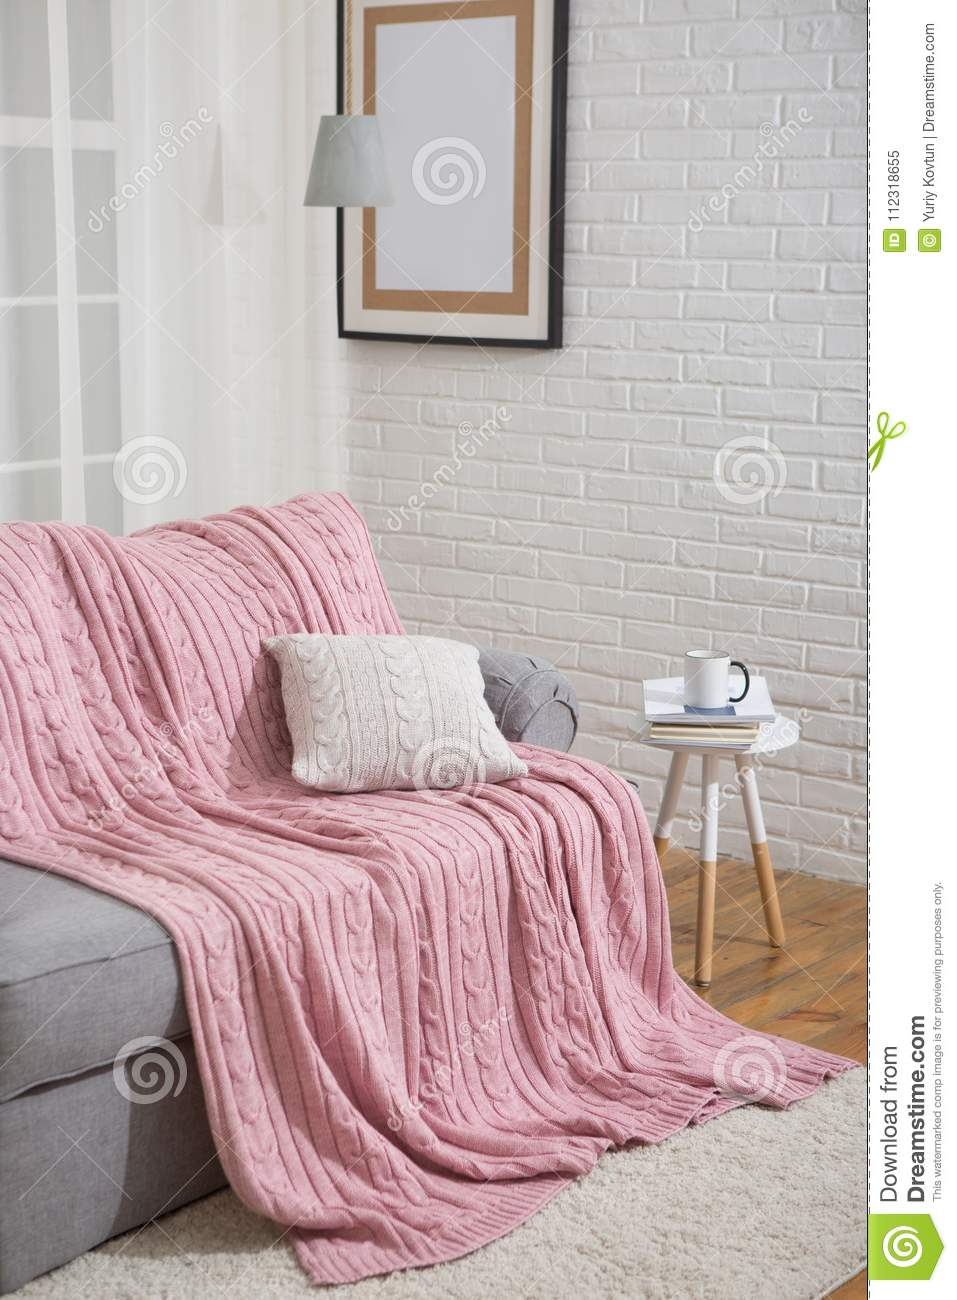 Sofa With Pink Plaid Interior Near Window Stock Image - Image of ...